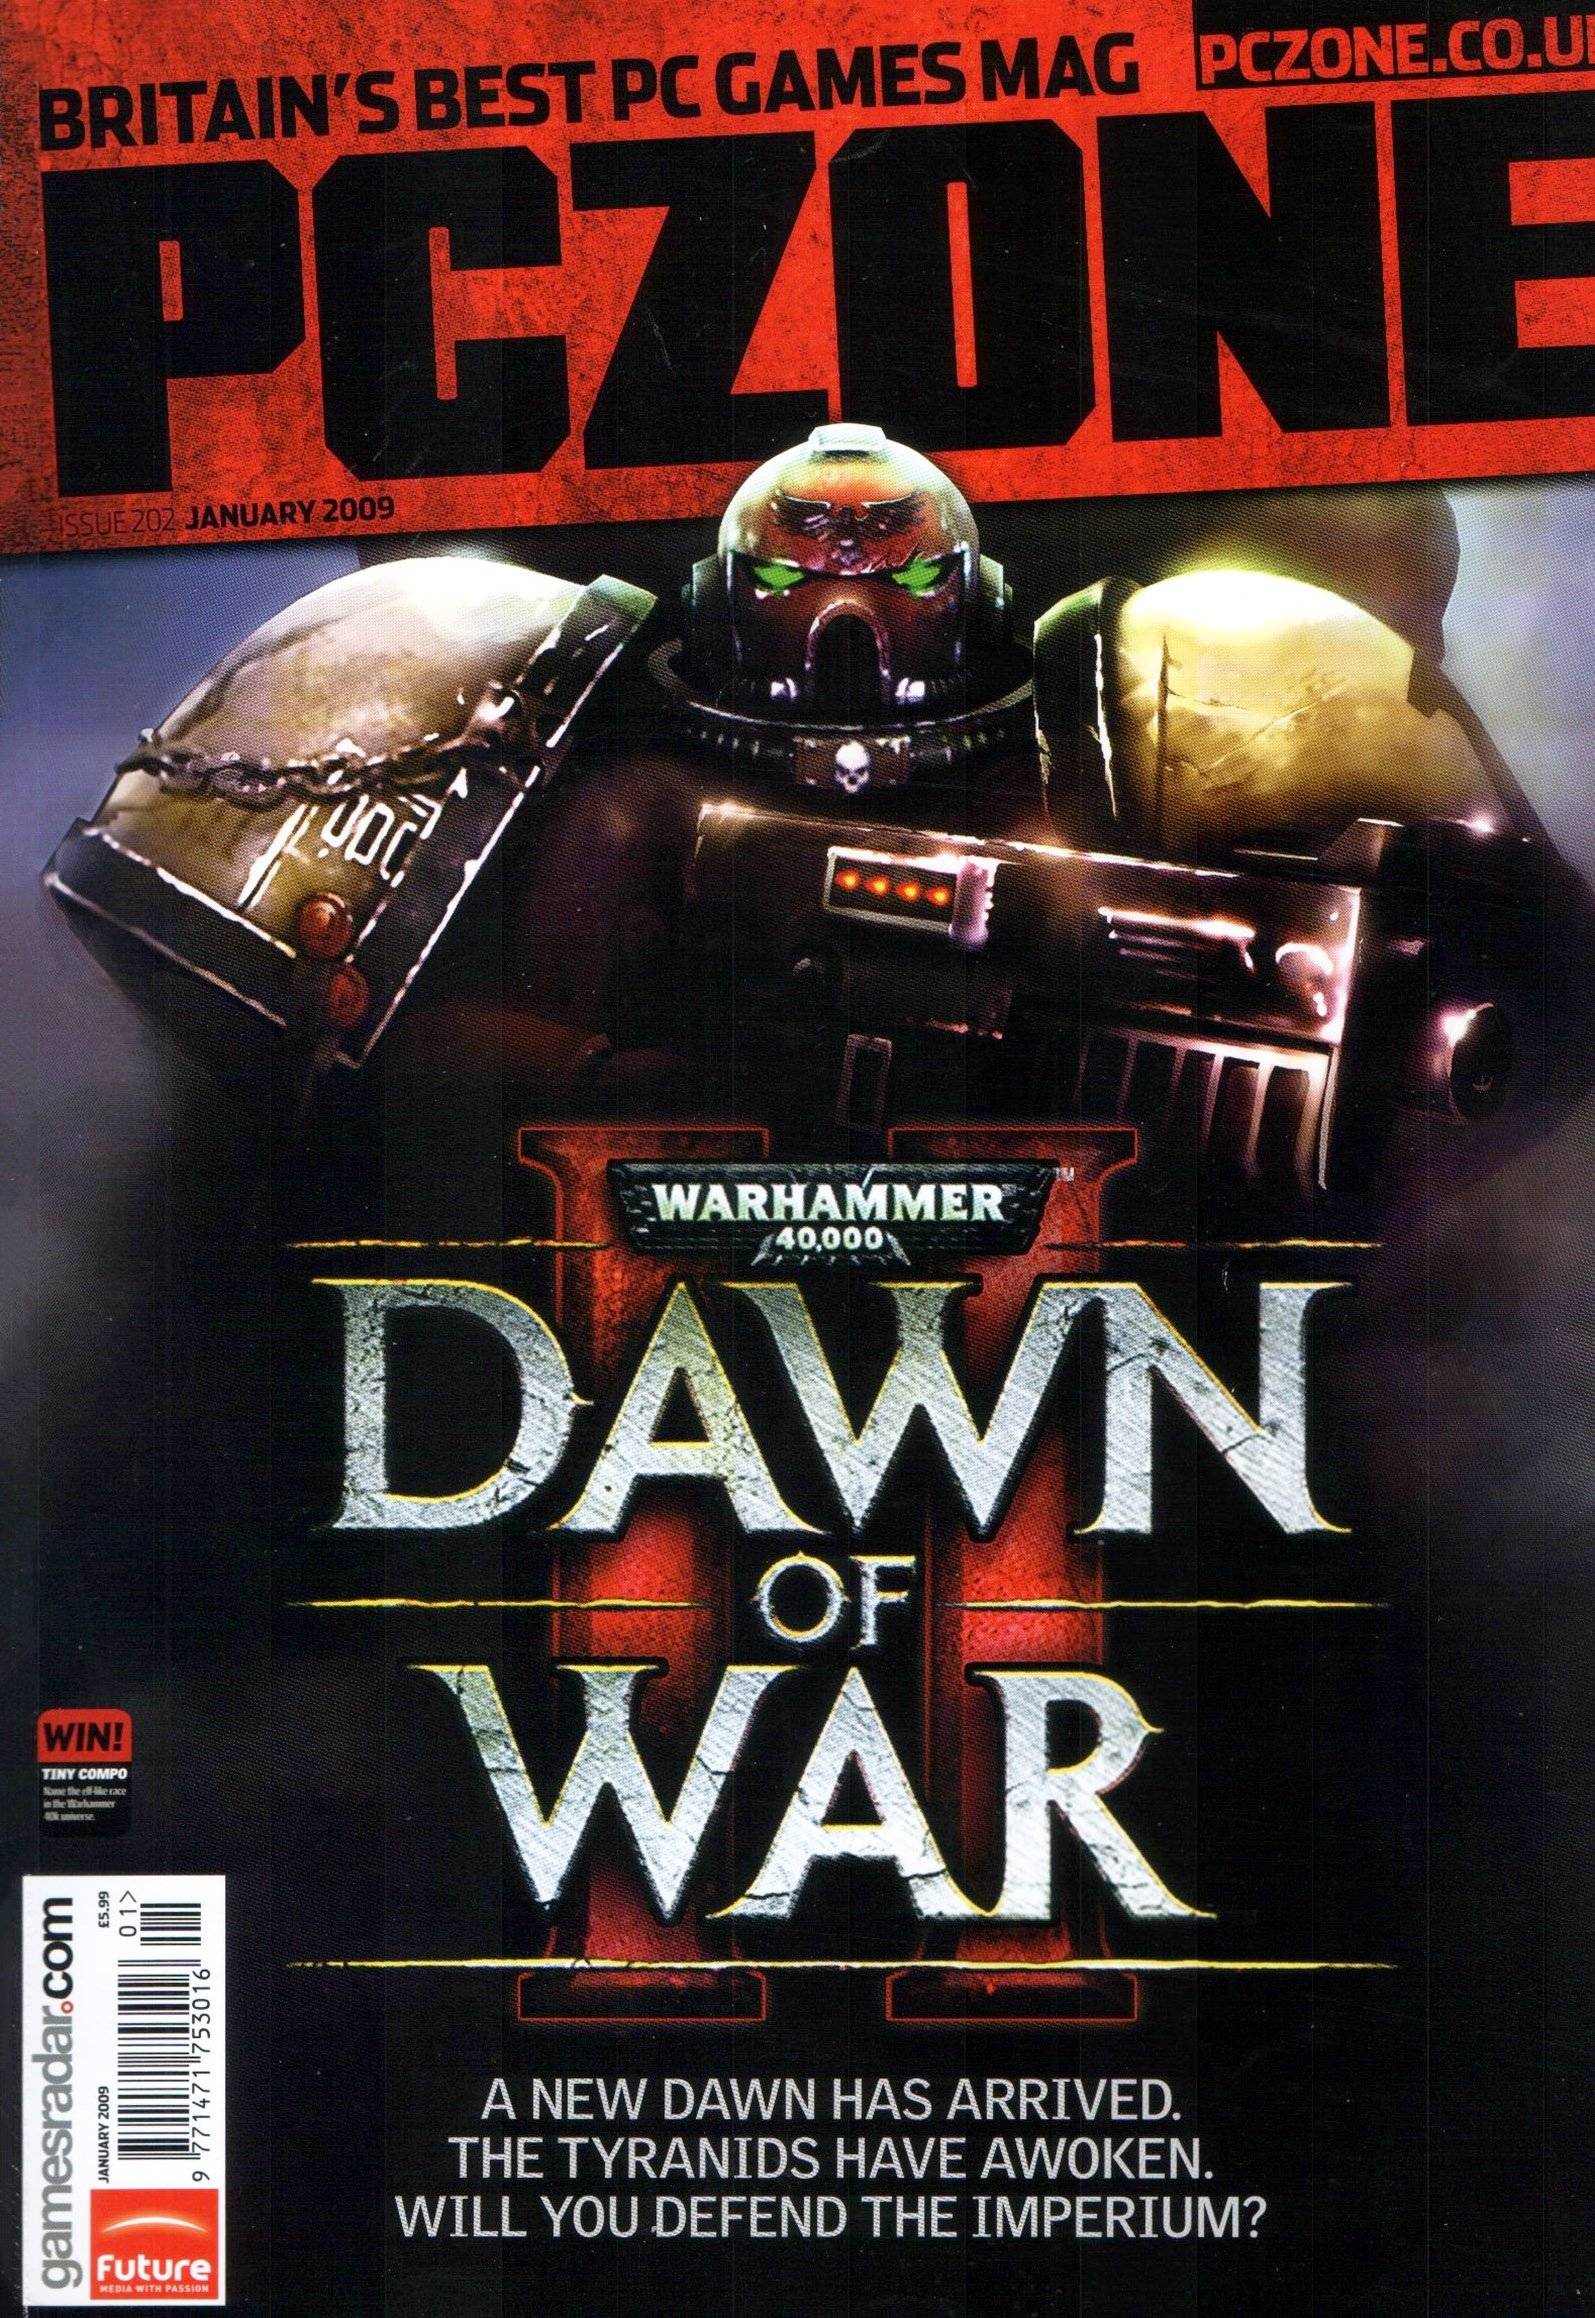 PC Zone Issue 202 (January 2009)